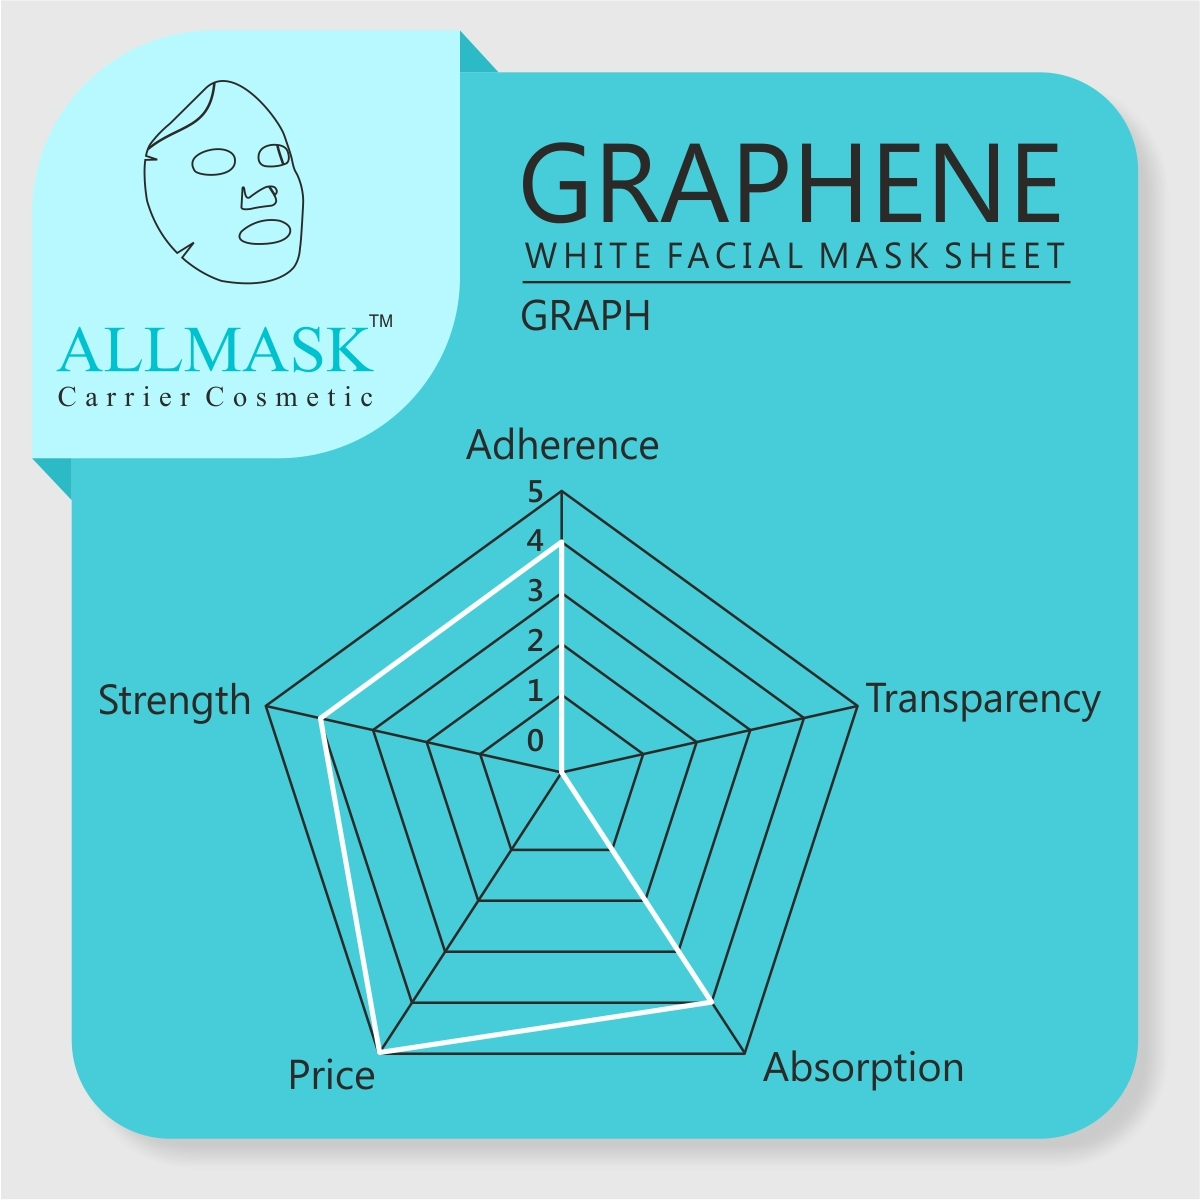 Graphene White Facial Mask Sheet - 100% Original - ODM/OEM Customization Available